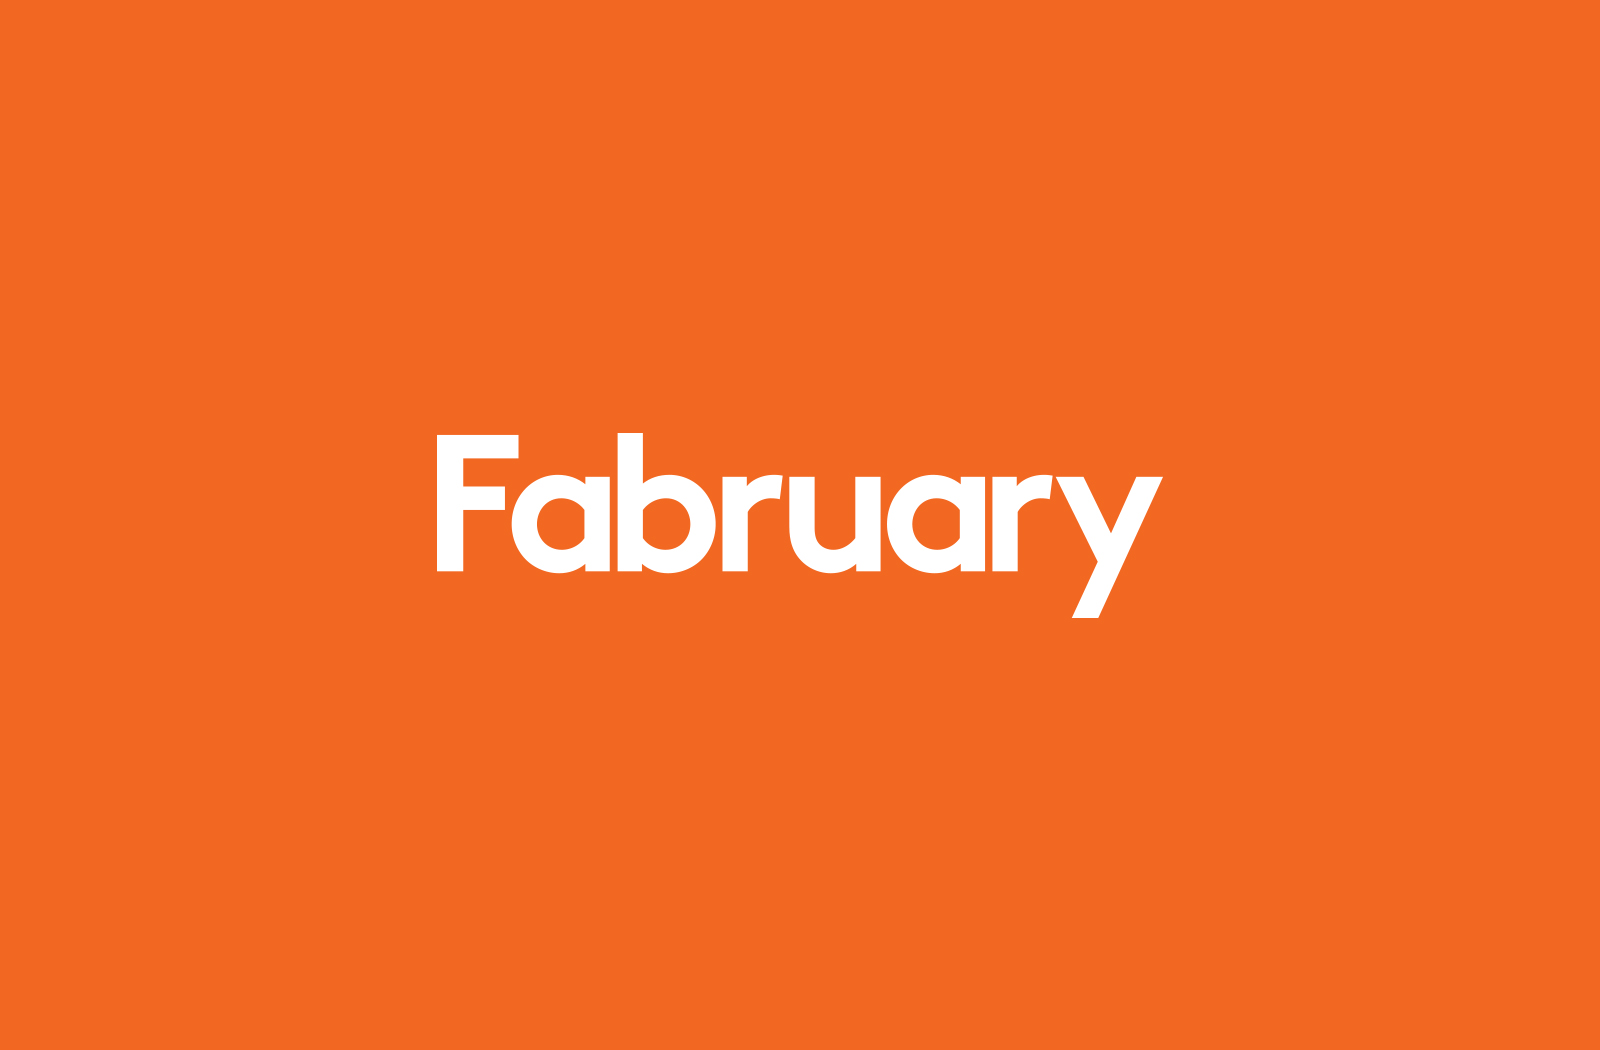 Fabruary Campaign - Fonts In Use